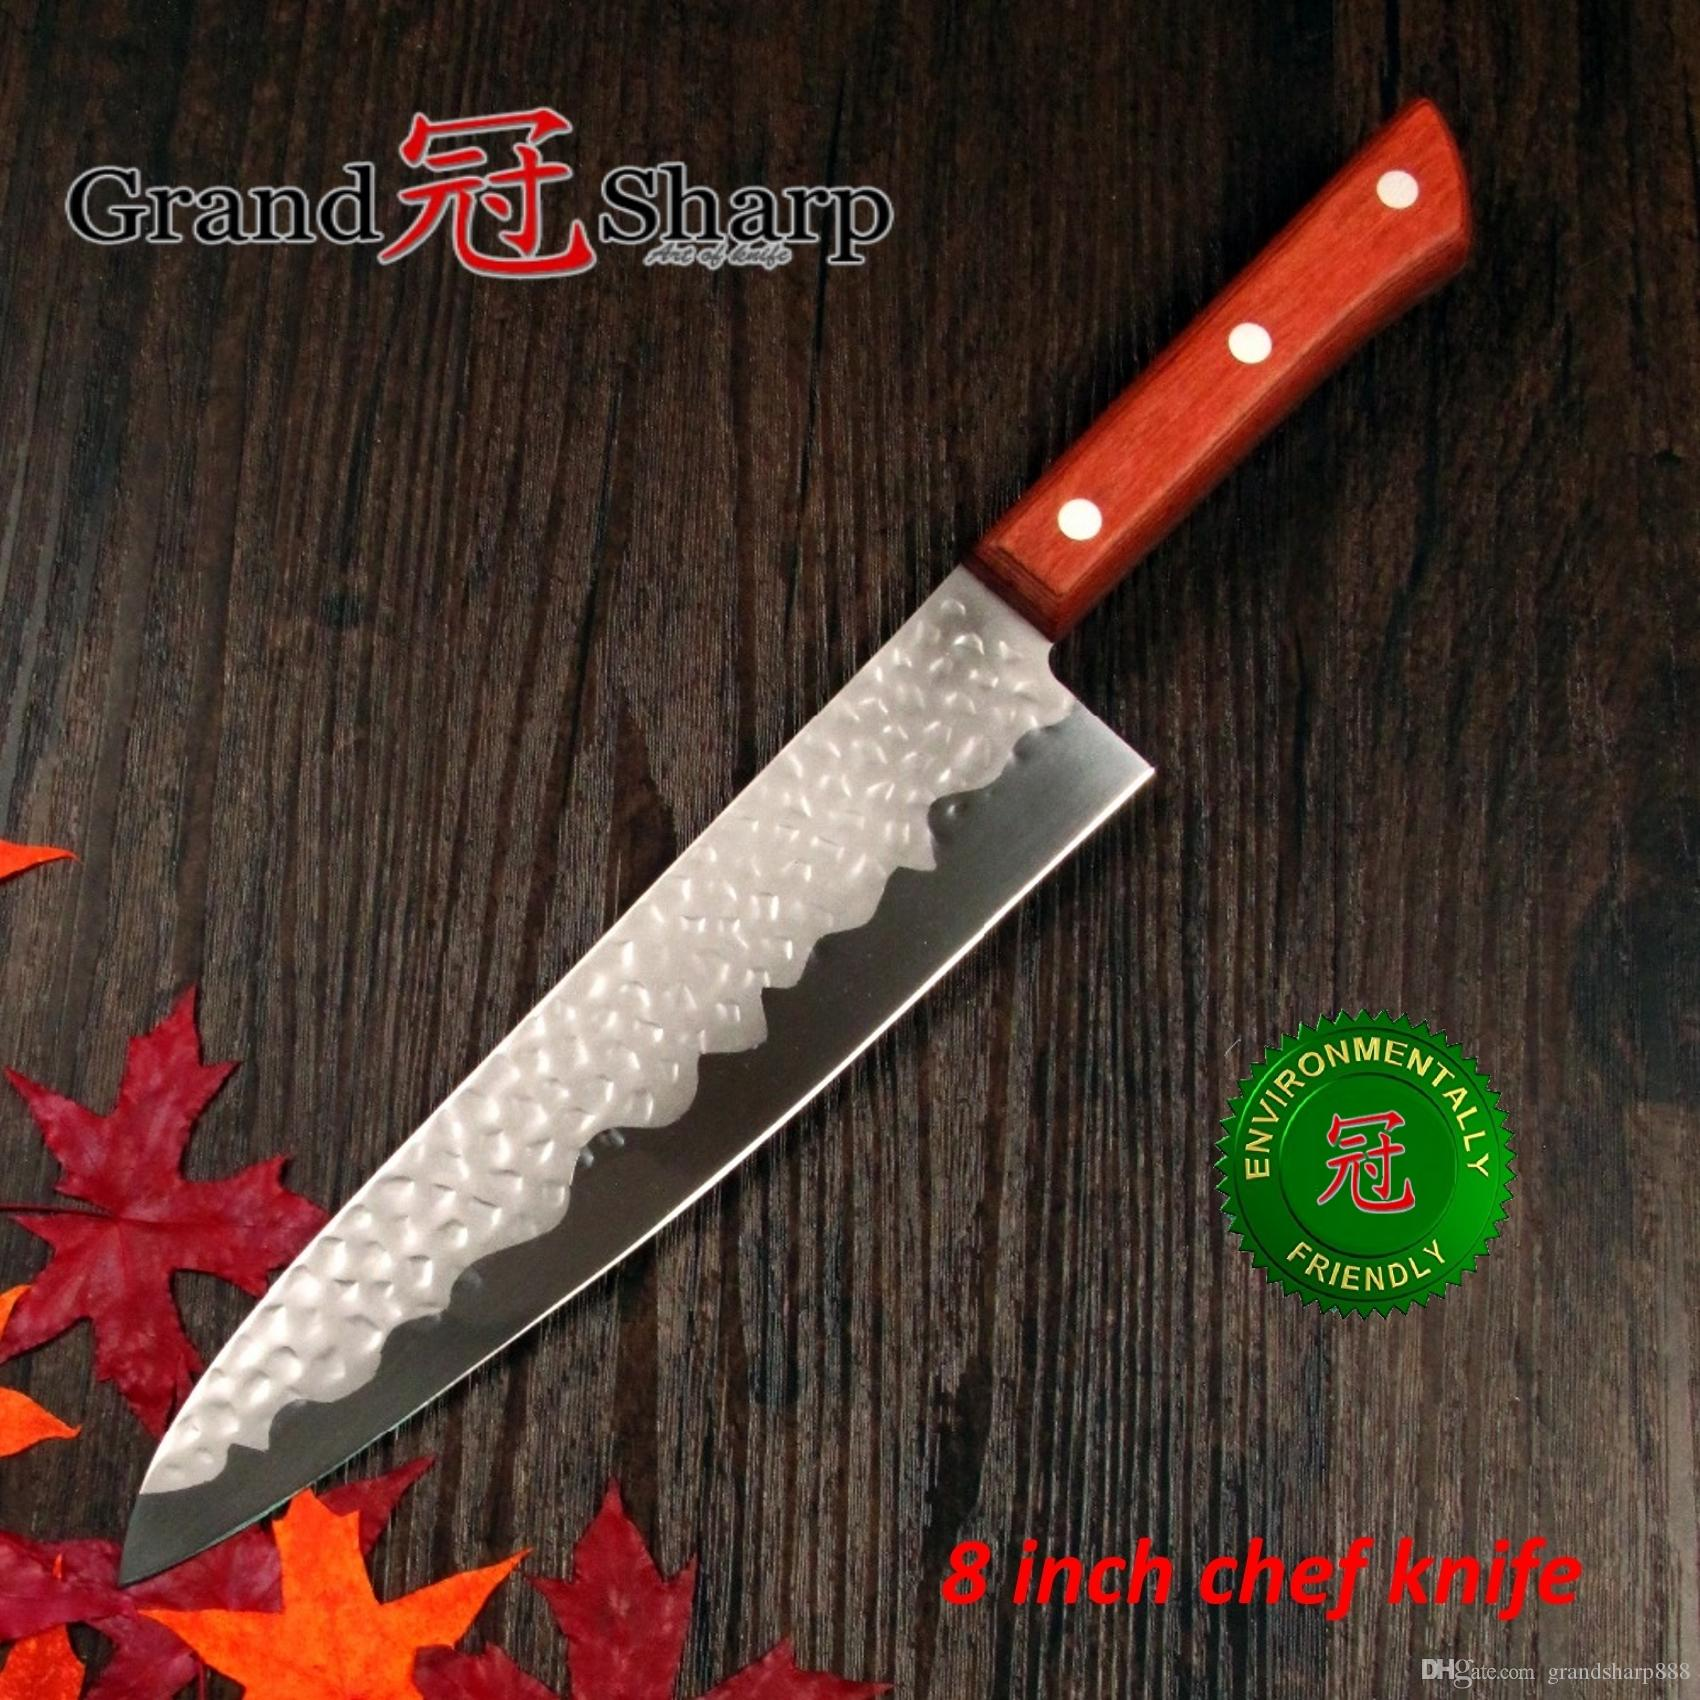 Grandsharp 8 Inch Chef Knife German Stainless Steel 14116 Hammered